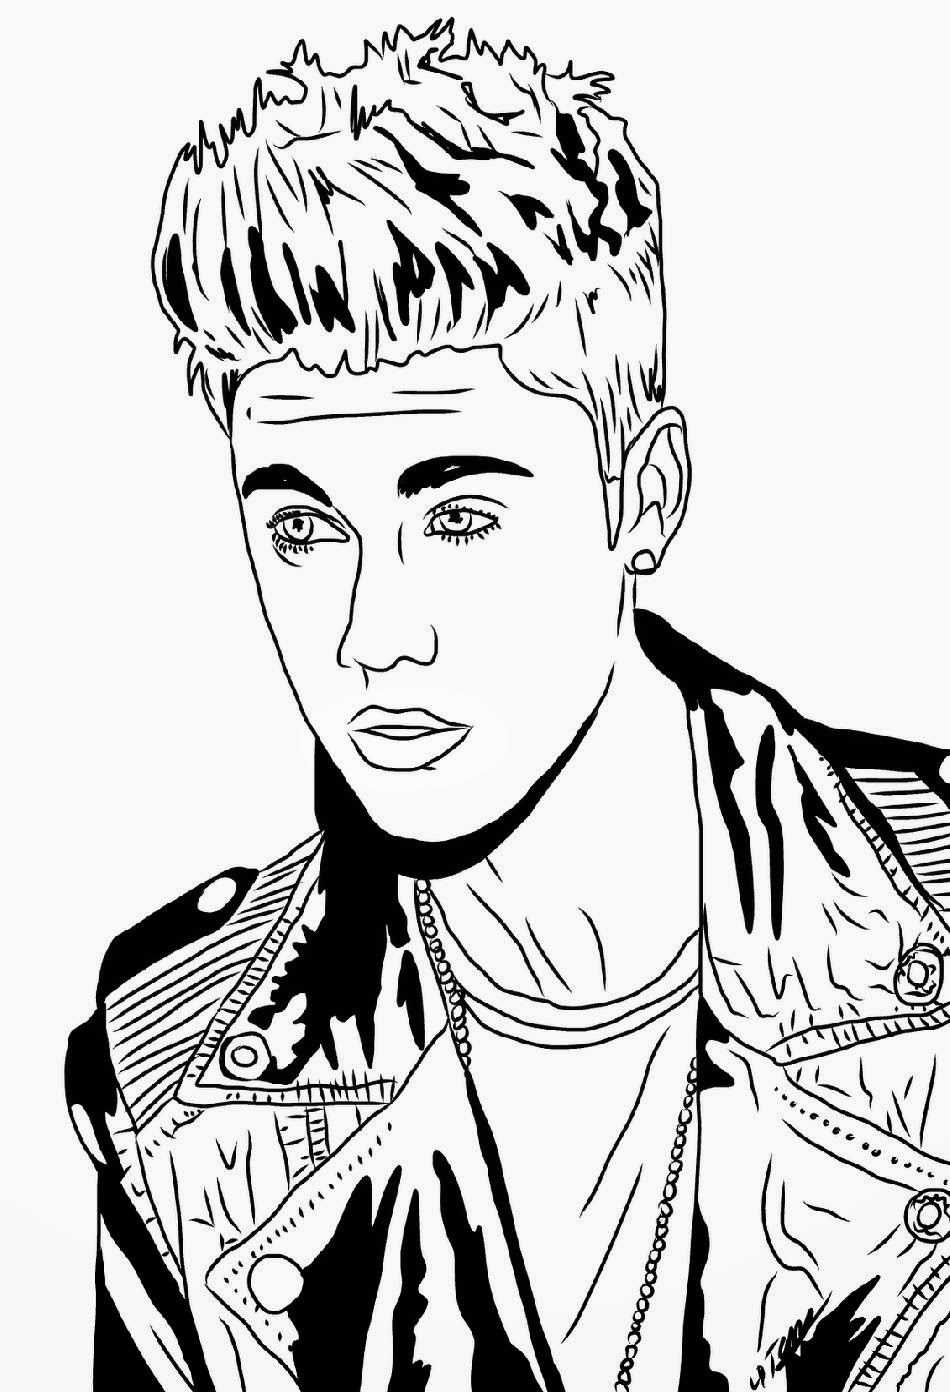 coloring pages of justin bieber - Justin Bieber Coloring Pages Coloring Pages Printables